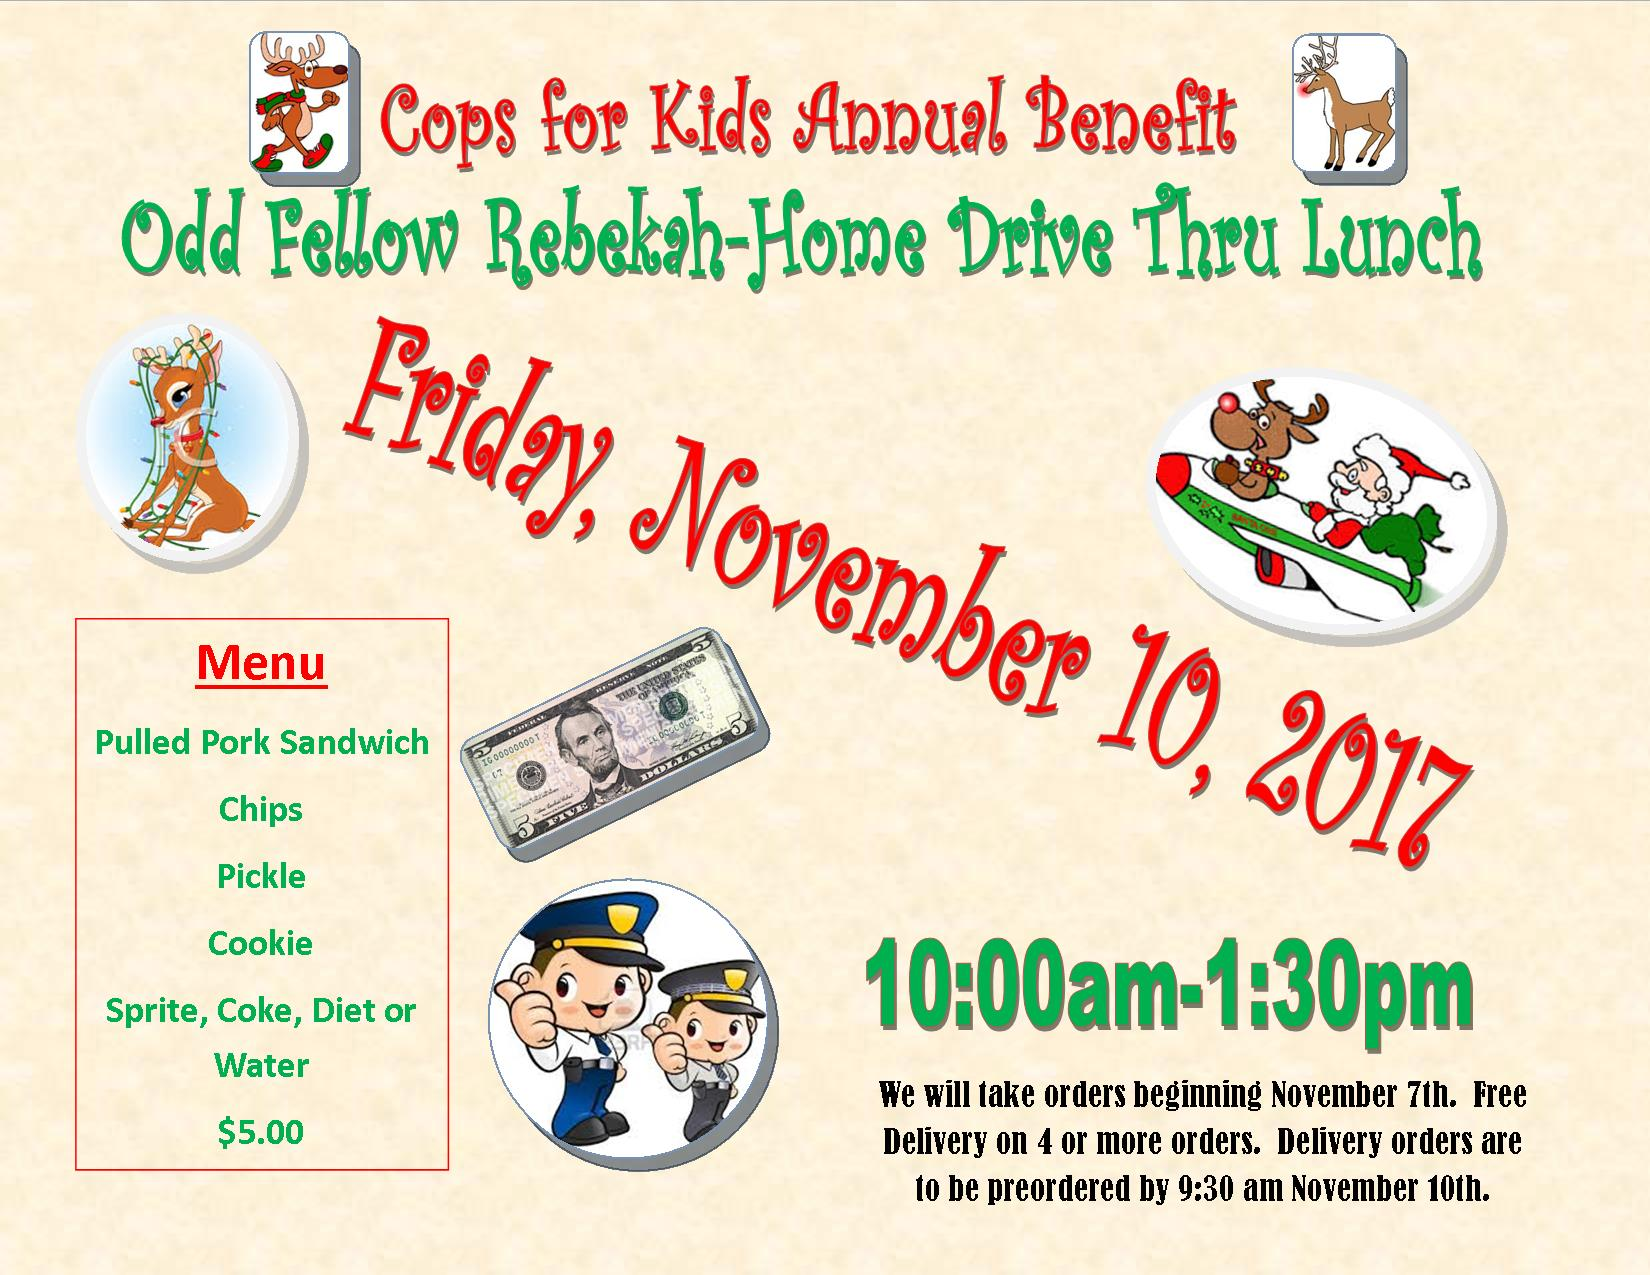 Cops for Kids Dirve-Through Lunch Friday